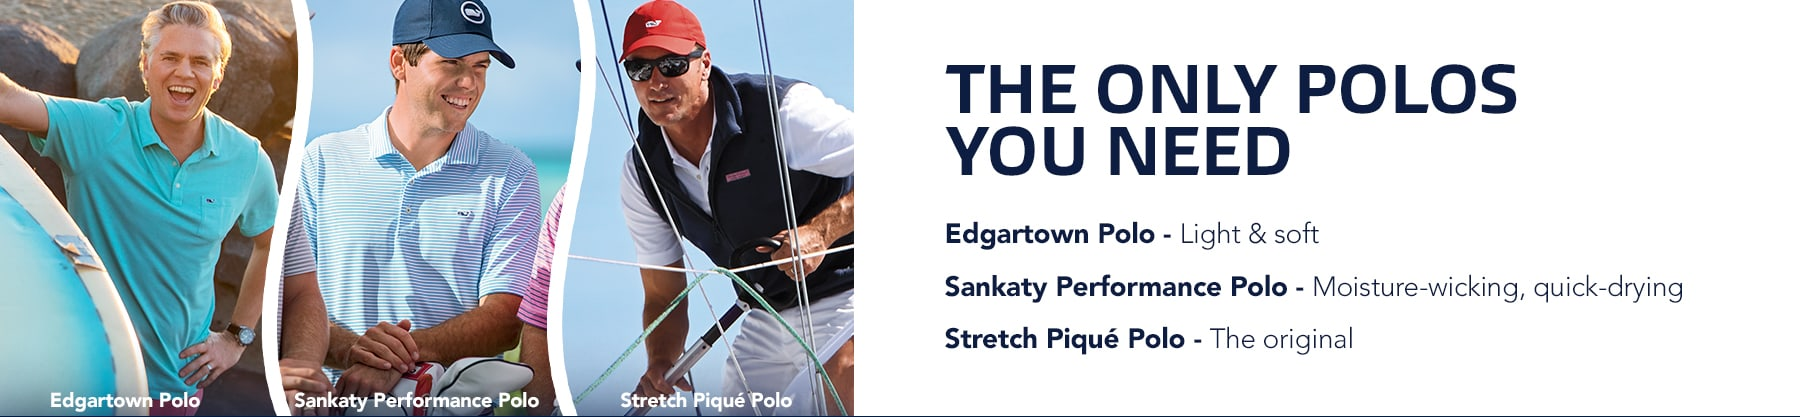 The Only Polos You Need: Edgartwon Polo - Light & Soft, Sankaty Performance Polo - Moisture-wicking, quick-drying, Stretch Pique Polo - the original